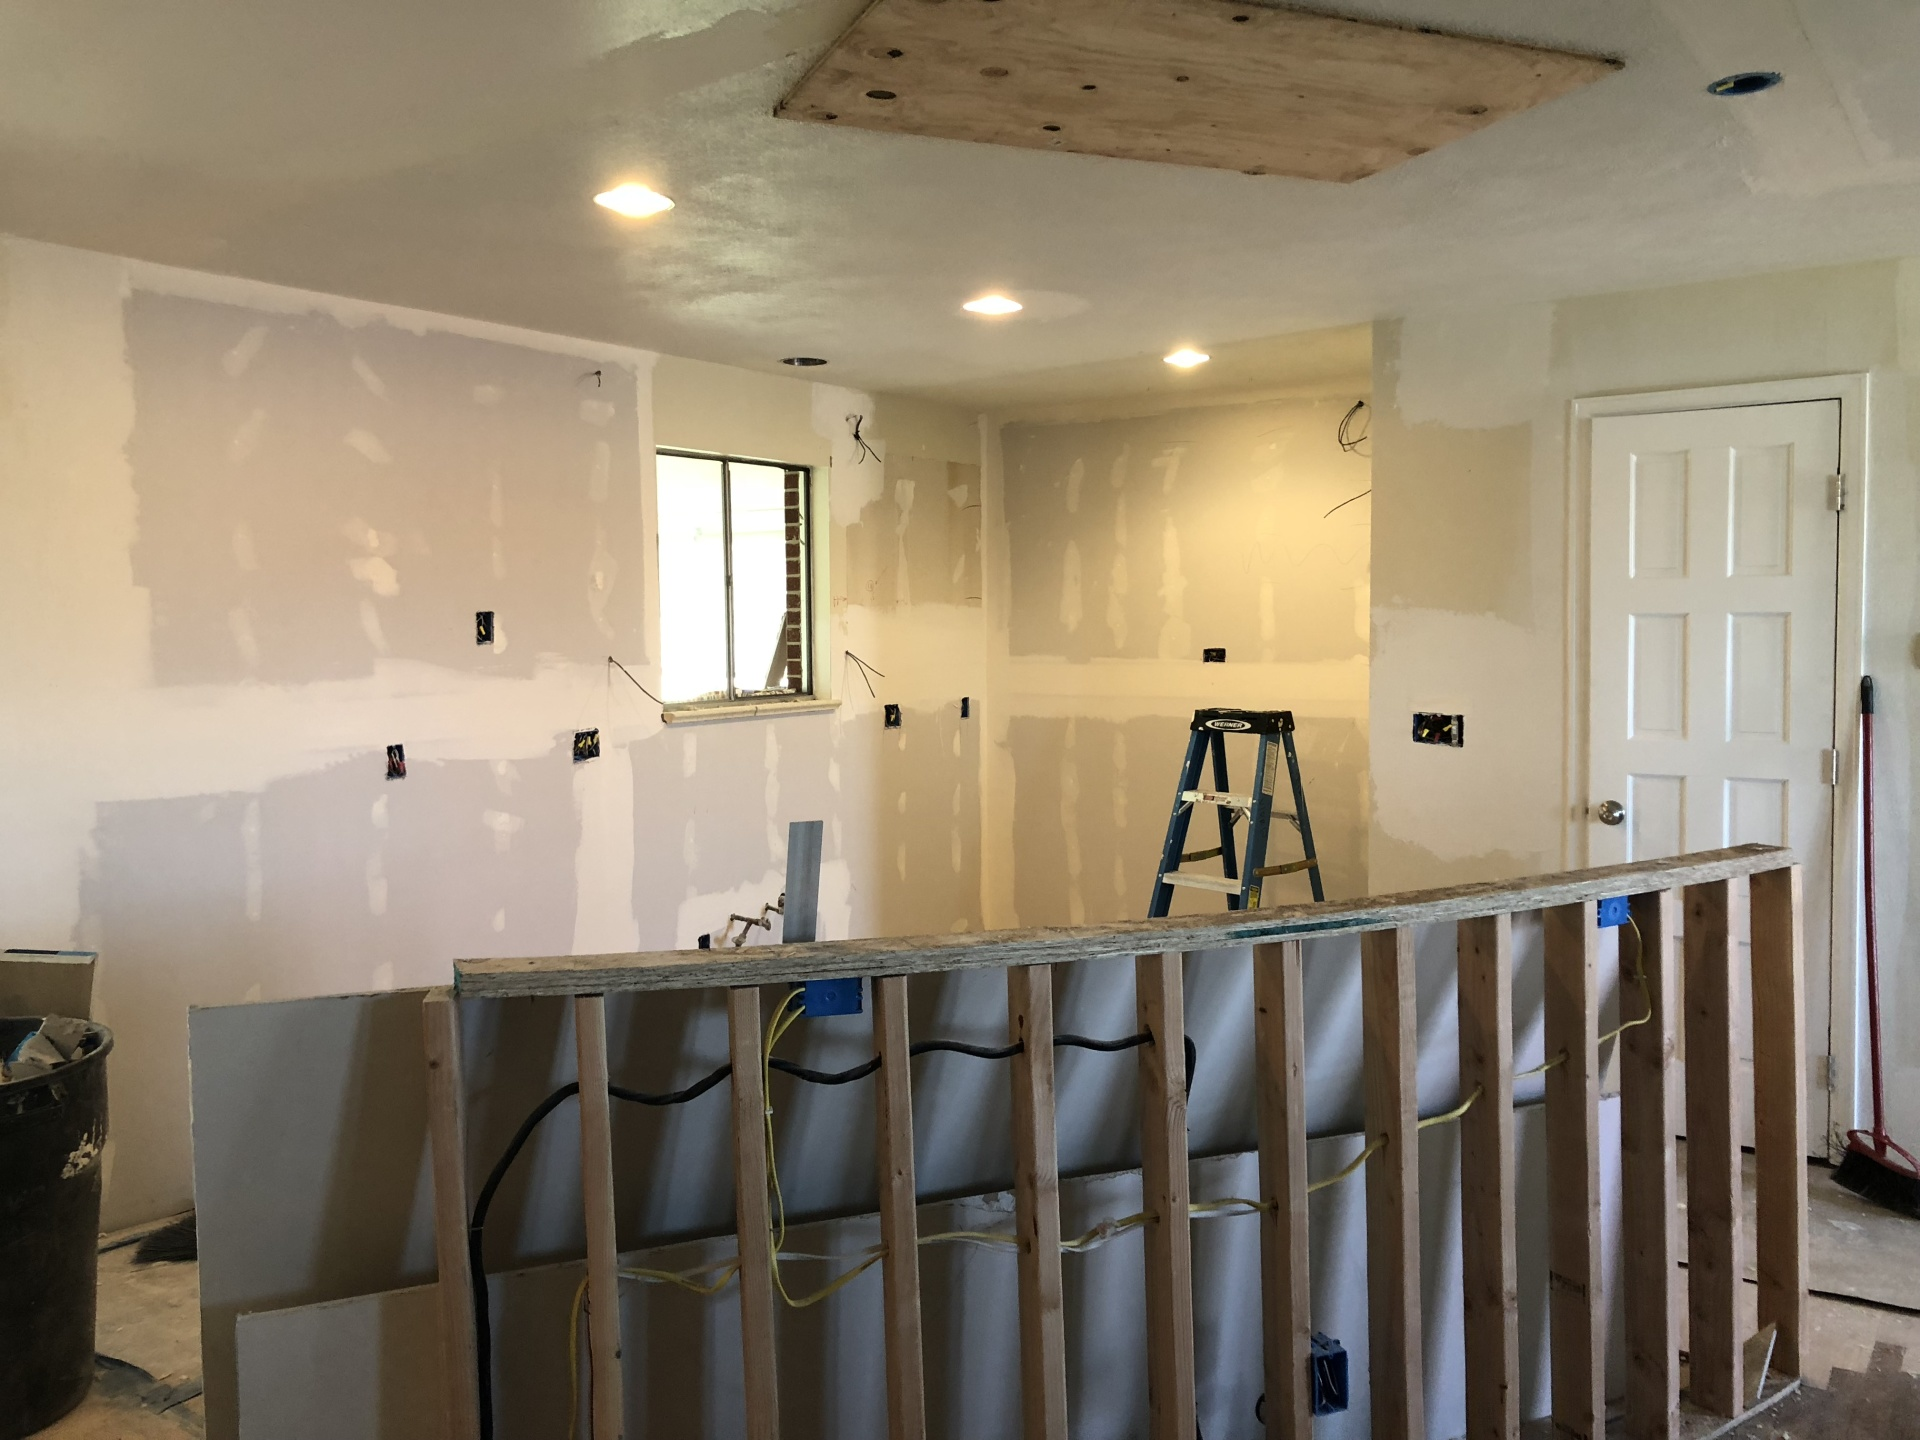 FULL KITCHEN ELECTRICAL SERVICE REMODEL